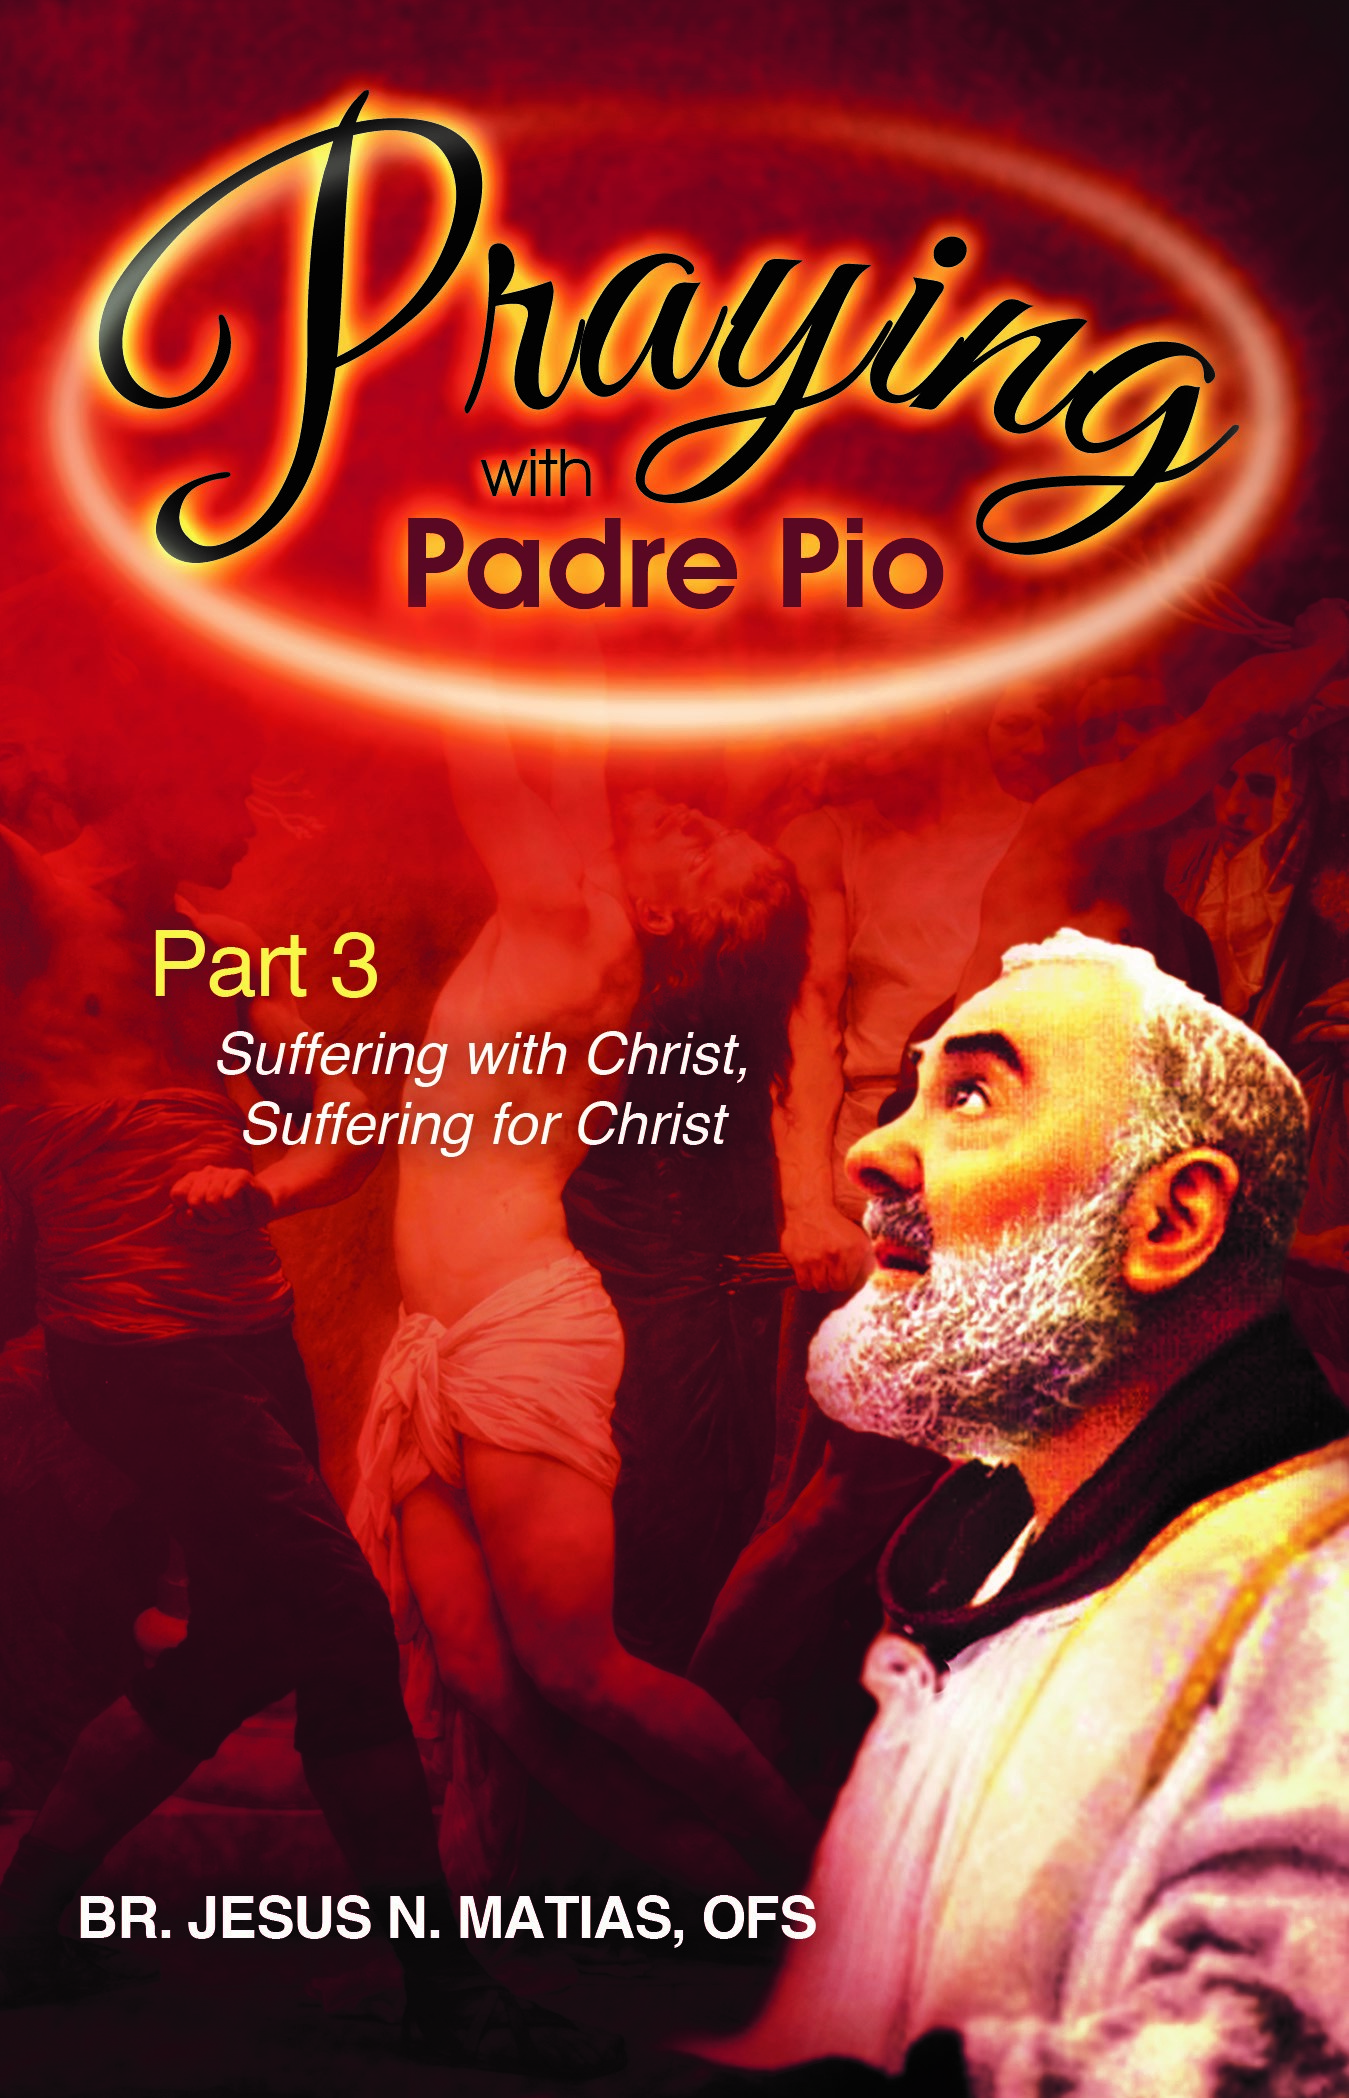 Praying with Padre Pio Part 3